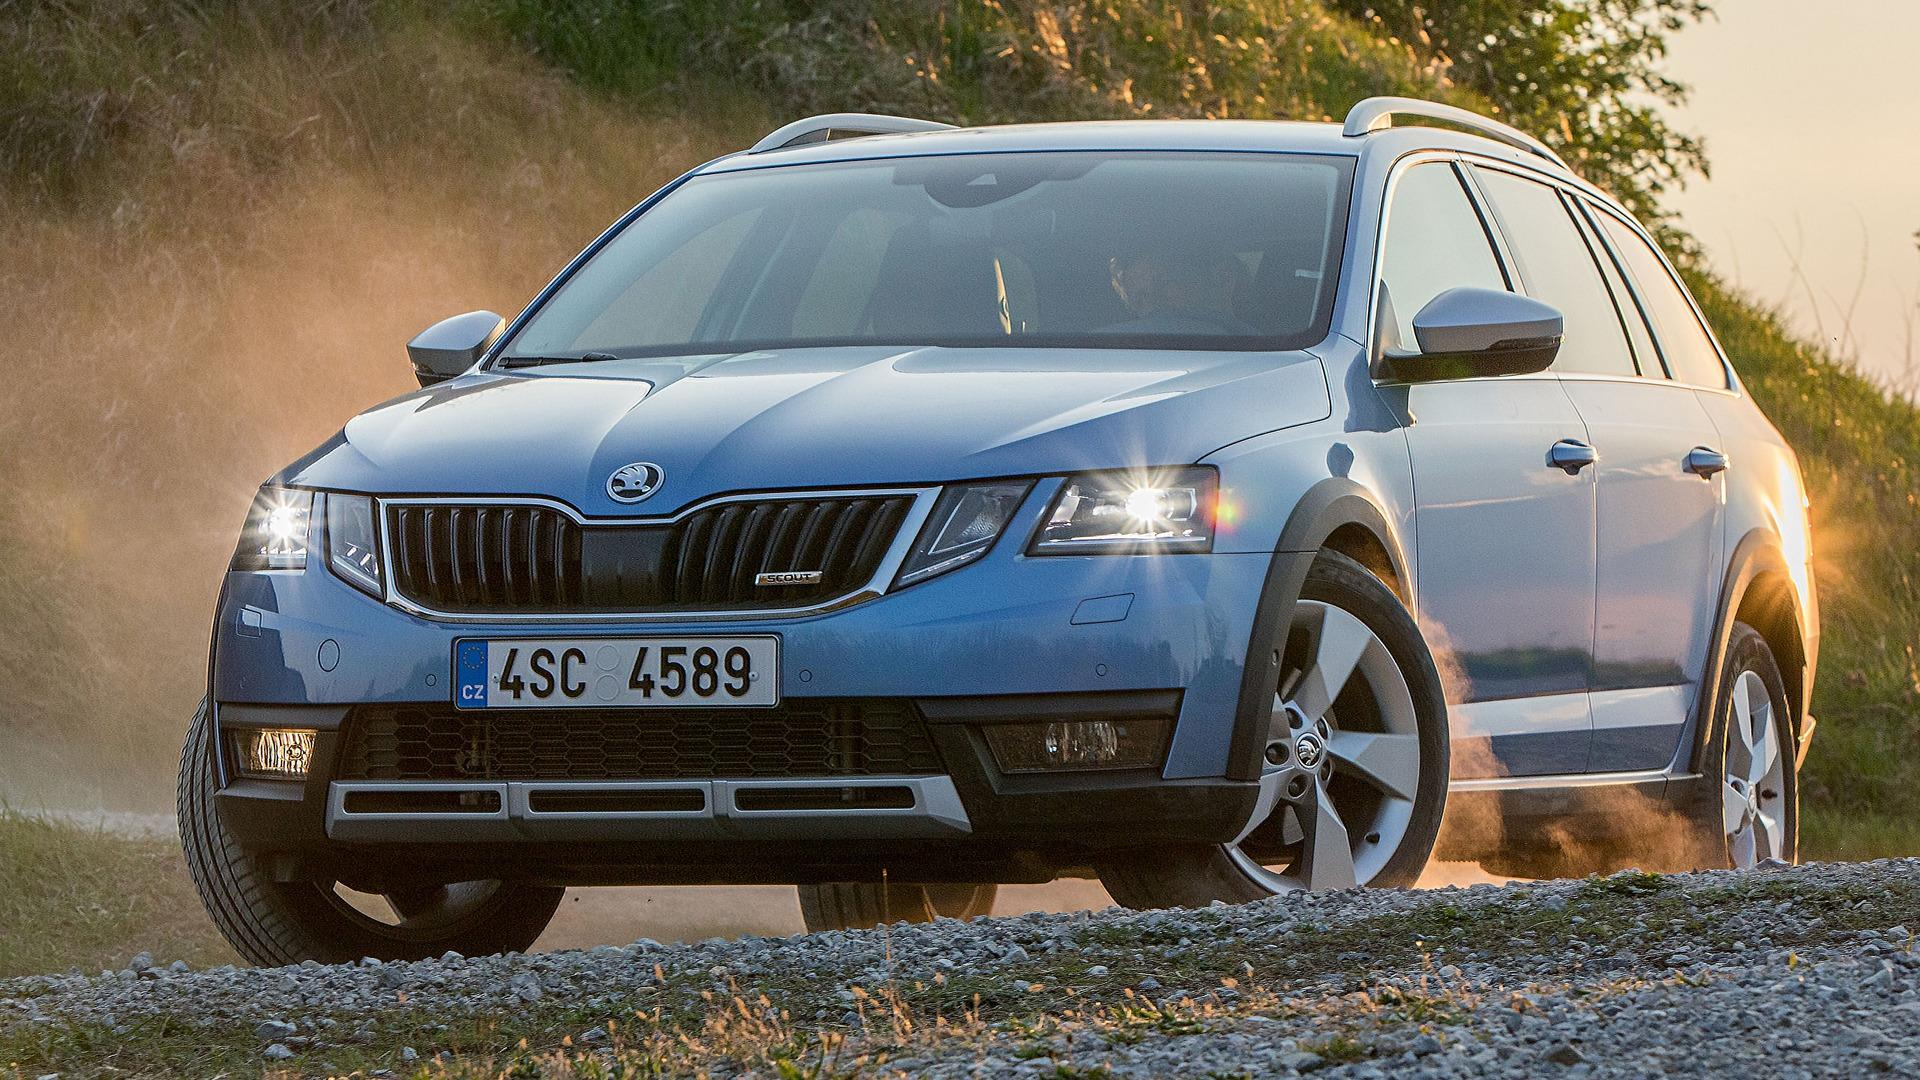 Skoda Says New Octavia Will Be State Of The Art